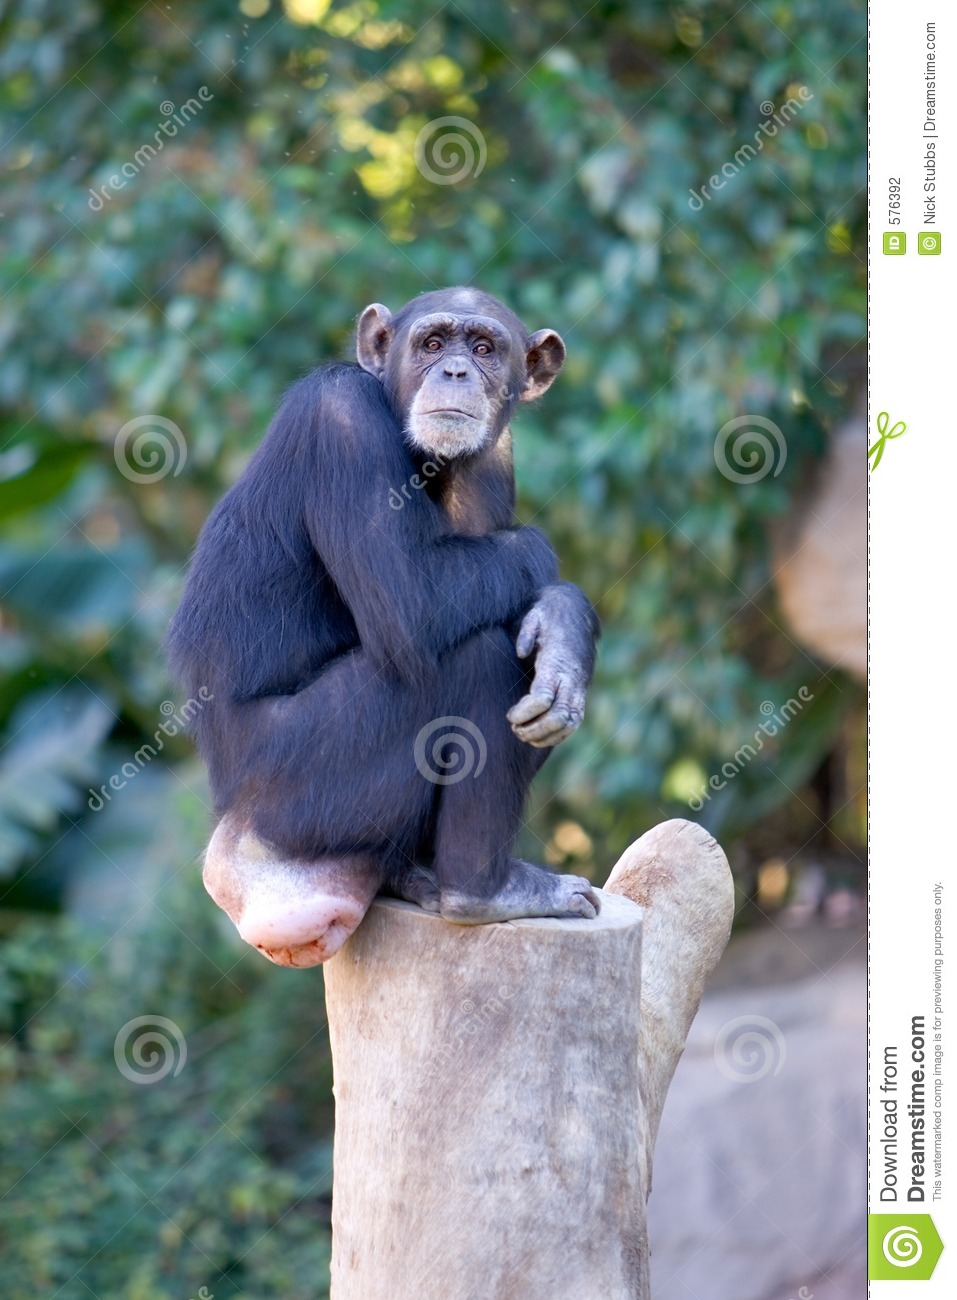 Lonely monkey sitting on top of a large tree trunk